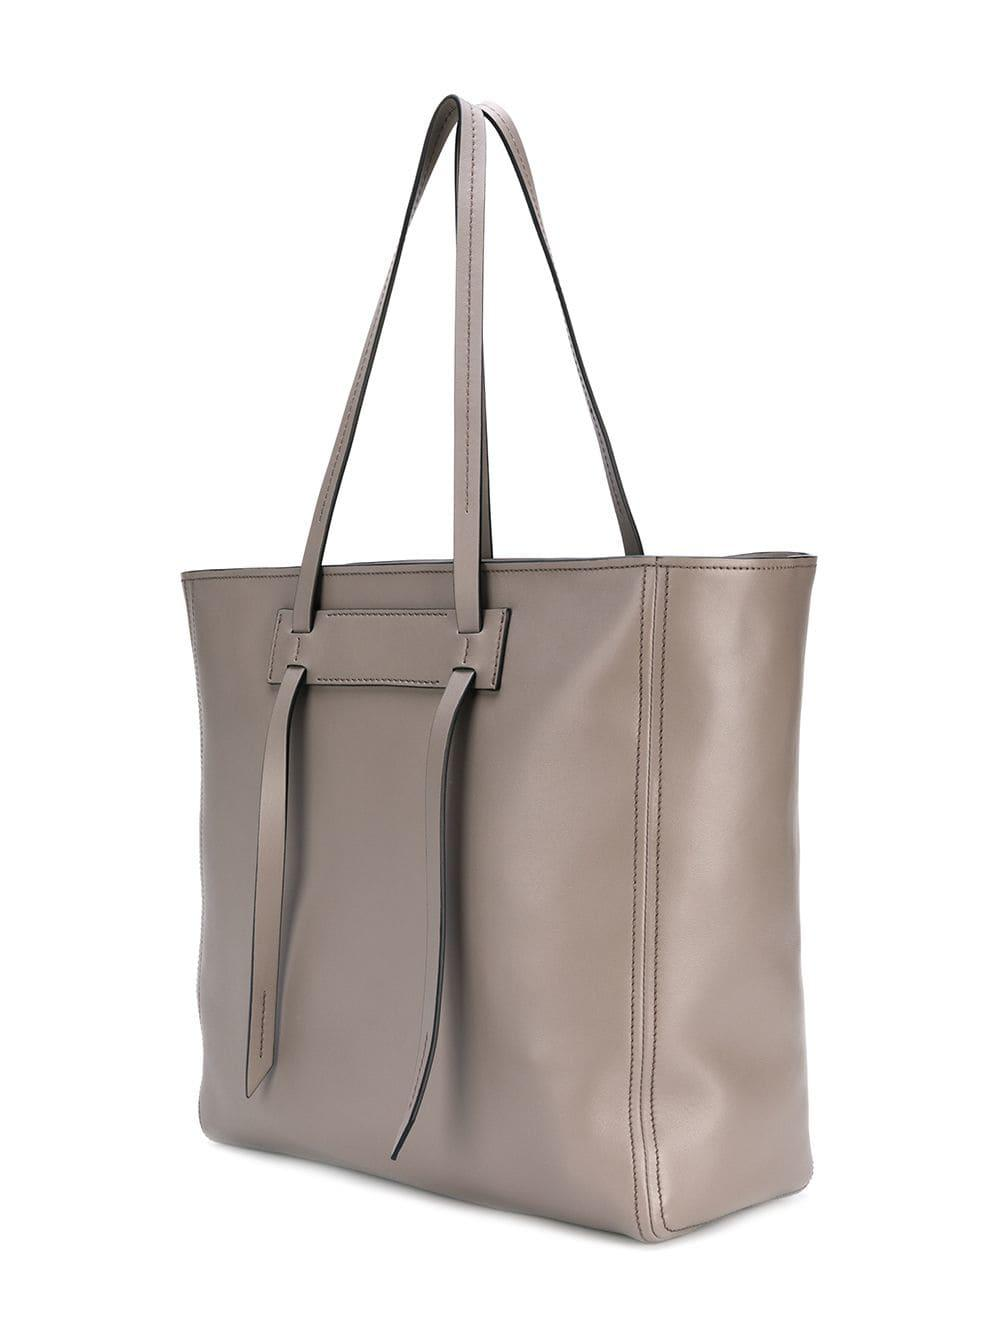 Lyst - Miu Miu Grace Luxe Leather Tote in Gray bcd58a8399966